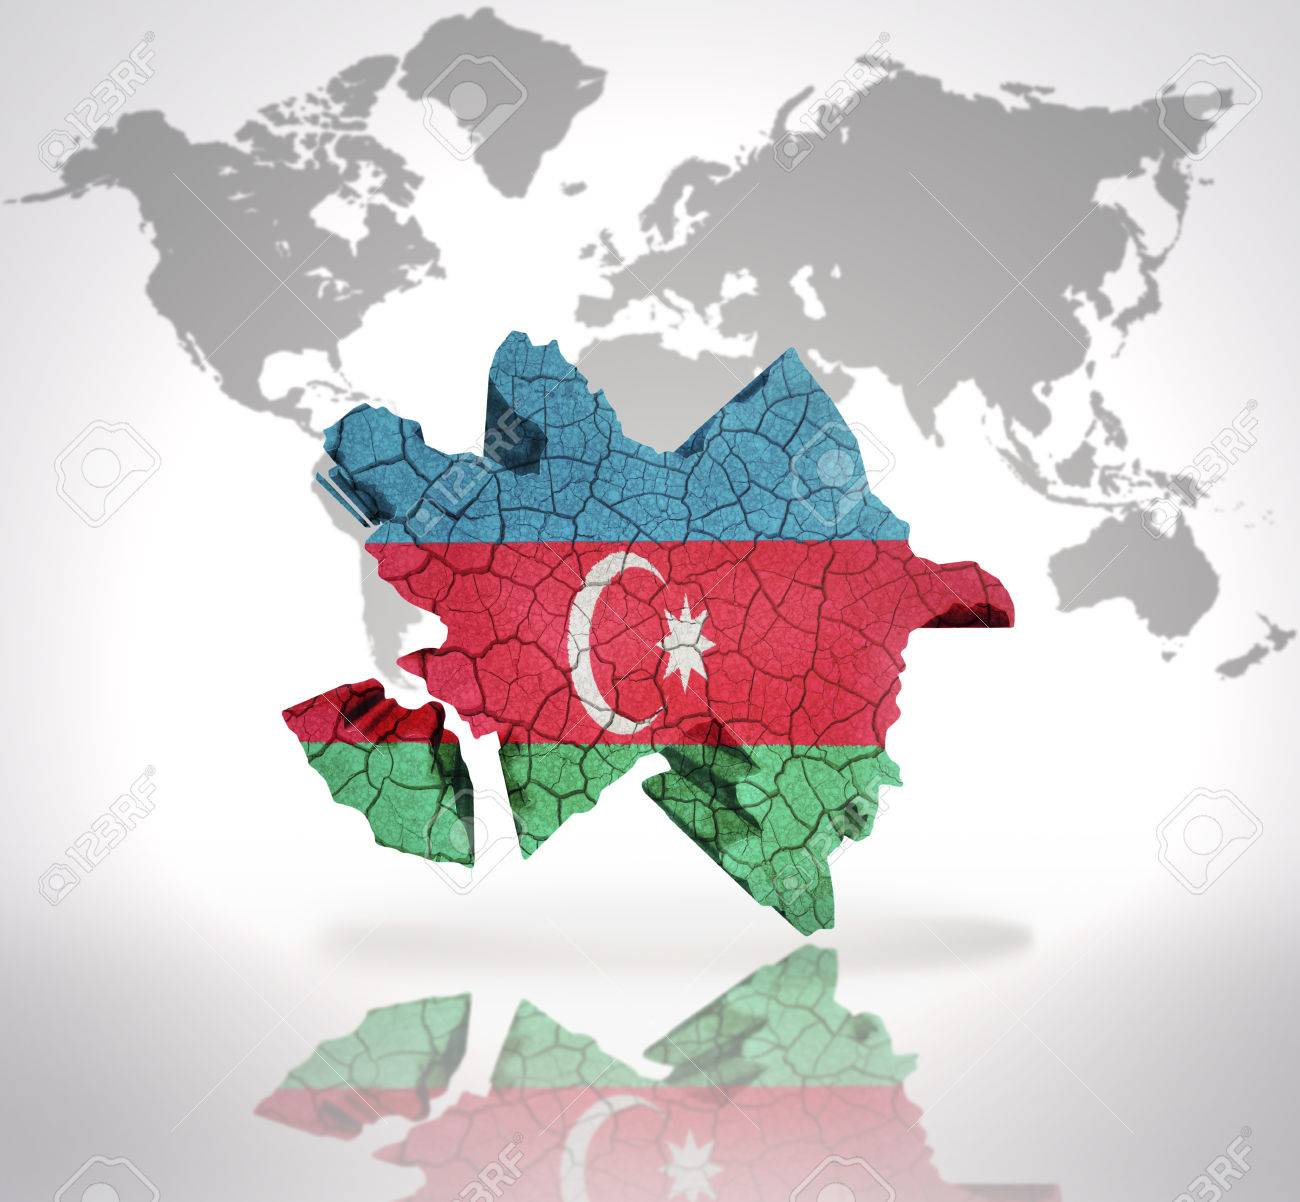 Map Of Azerbaijan With Azerbaijani Flag On A World Map Background Stock Photo Picture And Royalty Free Image Image 32714938